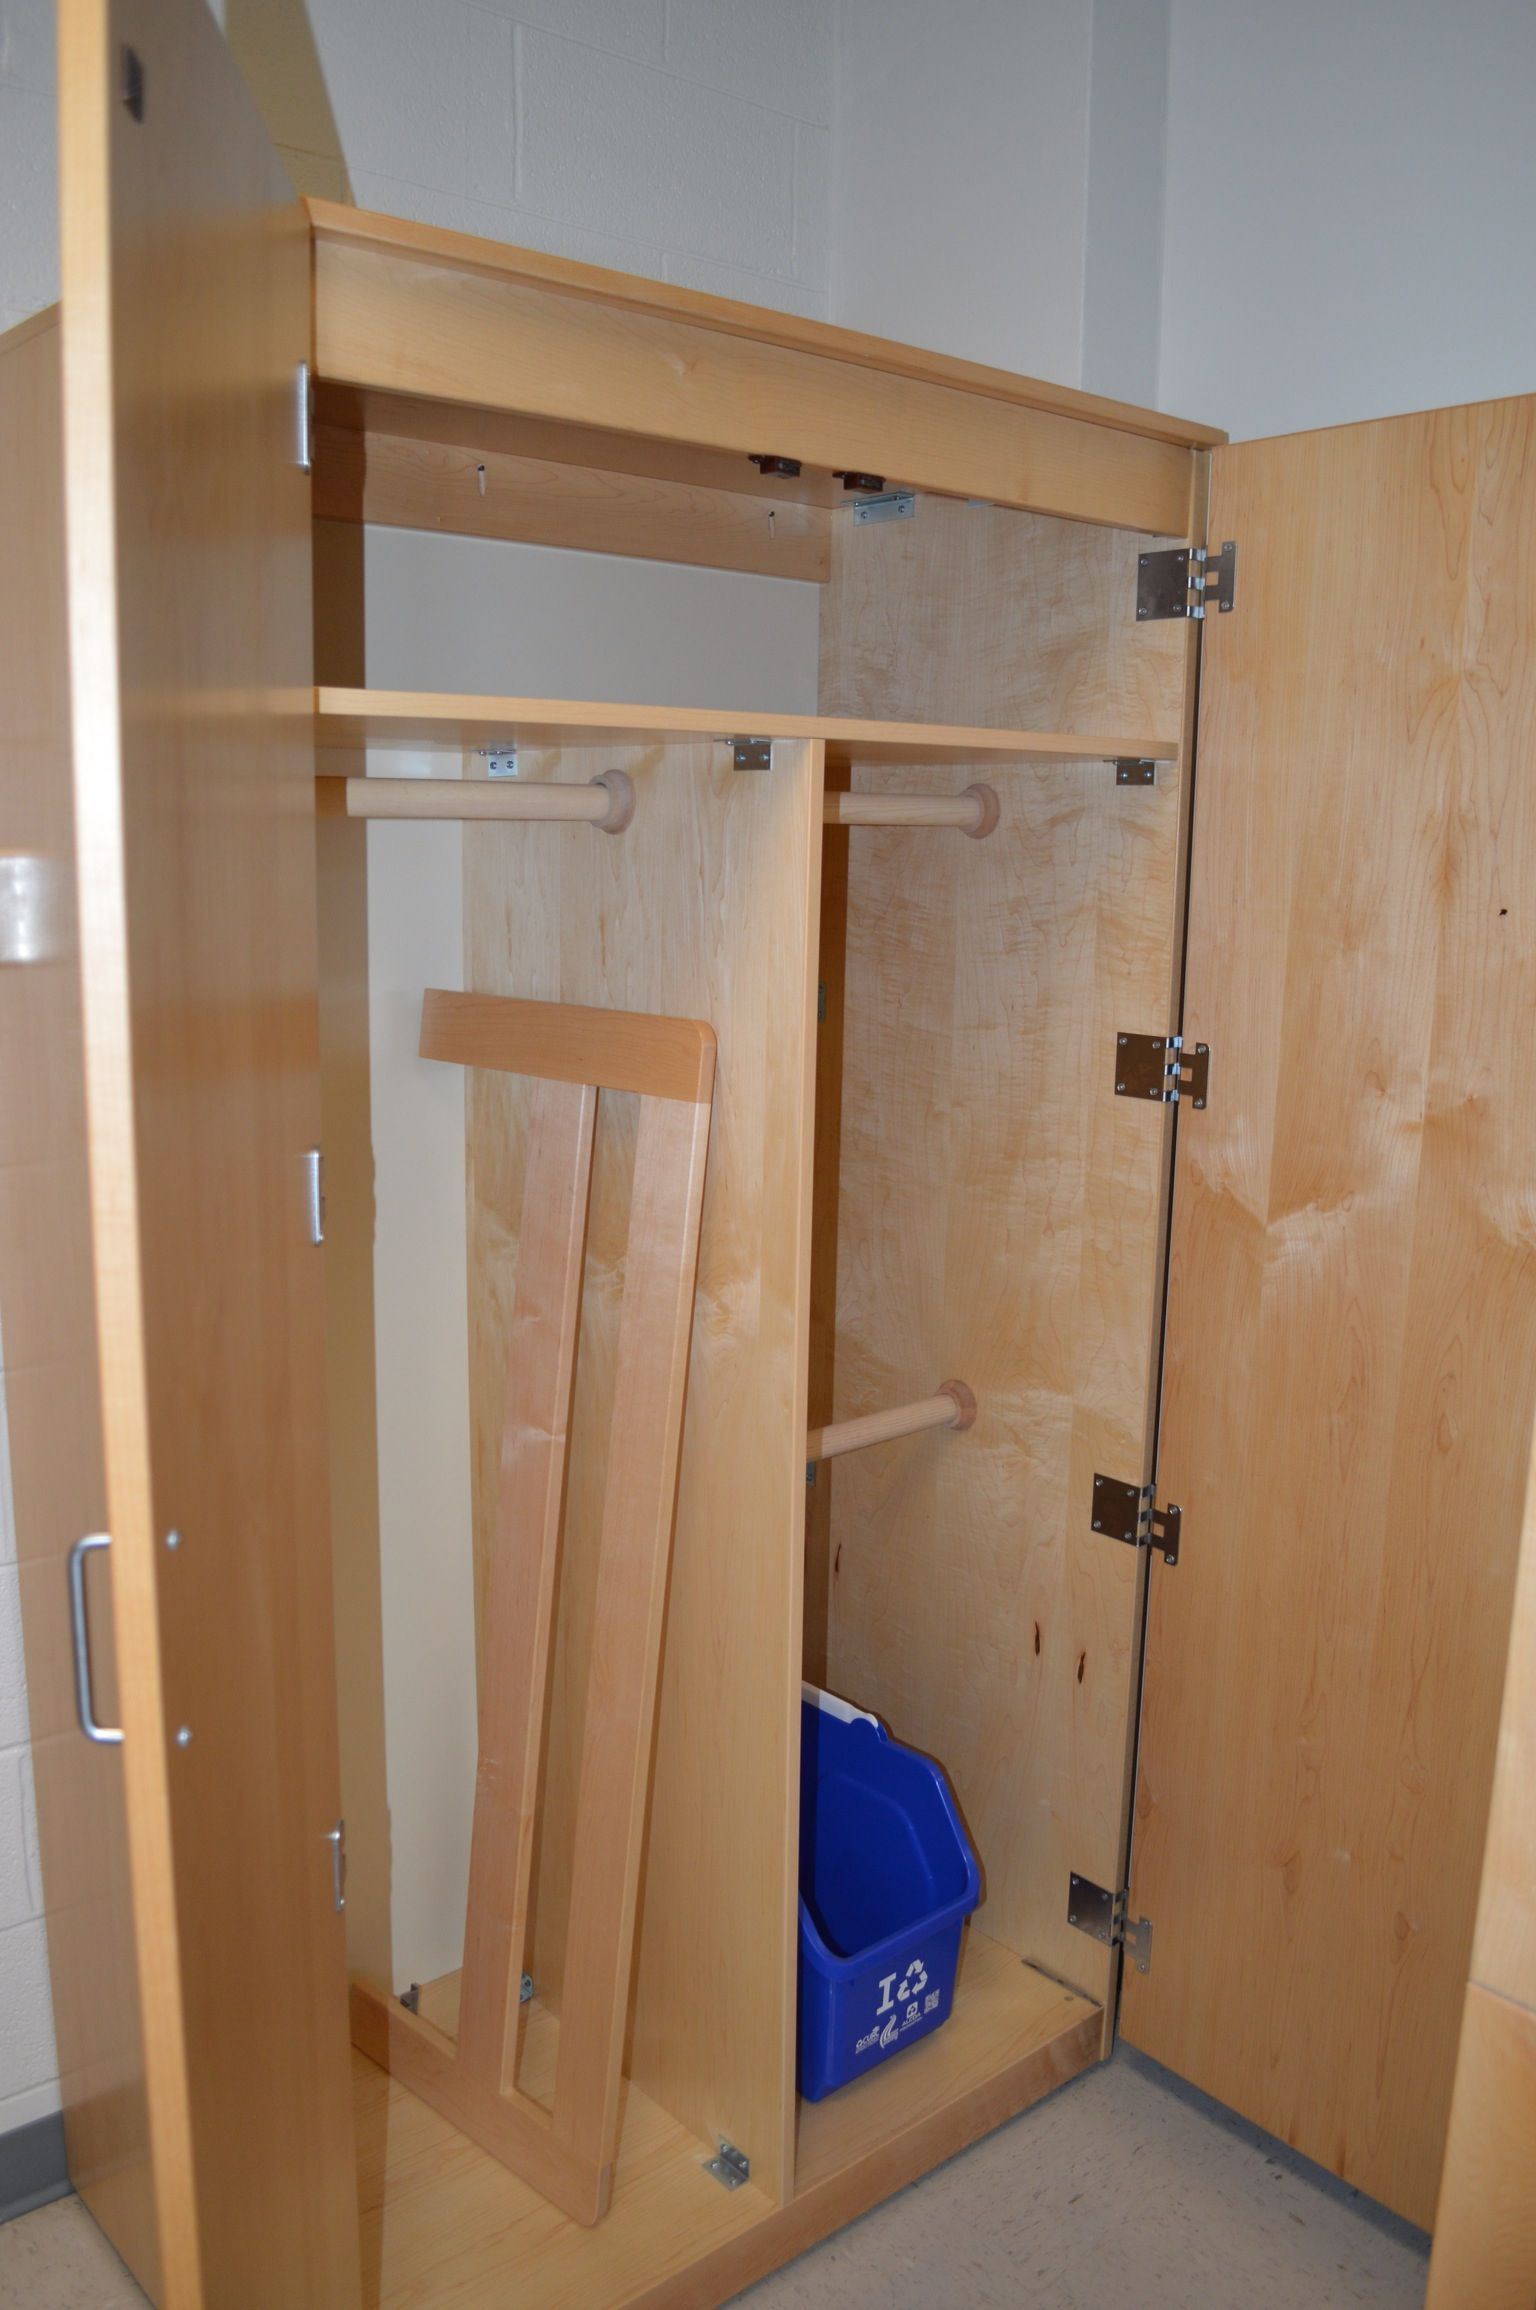 Hess Residence Hall Room Closet 1 Of 2 Closets In Room Residence Hall Room Closet Hall Room